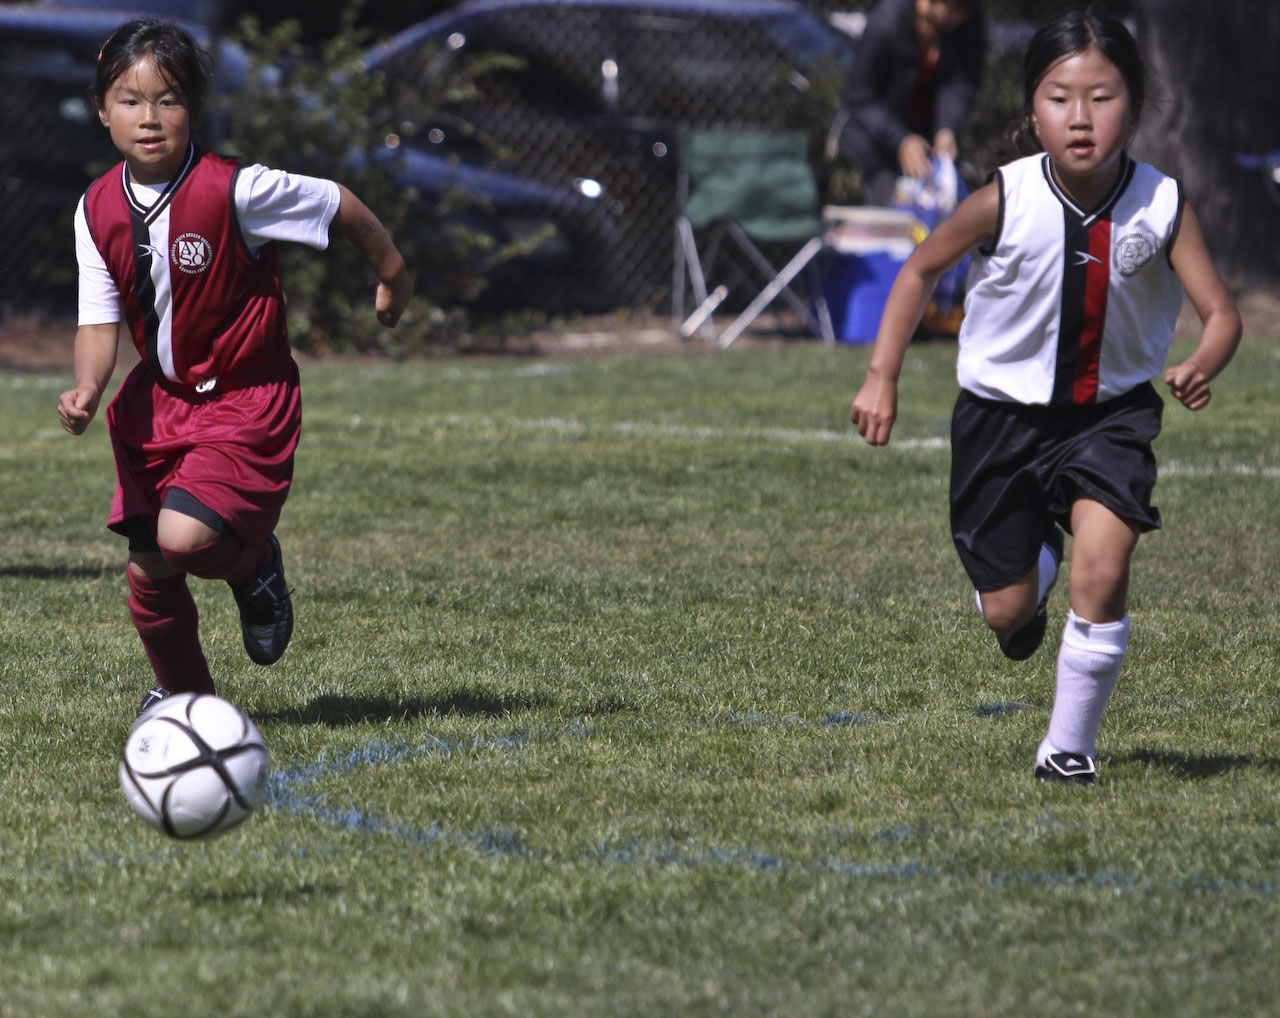 AYSO Millbrae Girls' Soccer U8, Taylor Middle School, Millbrae, California